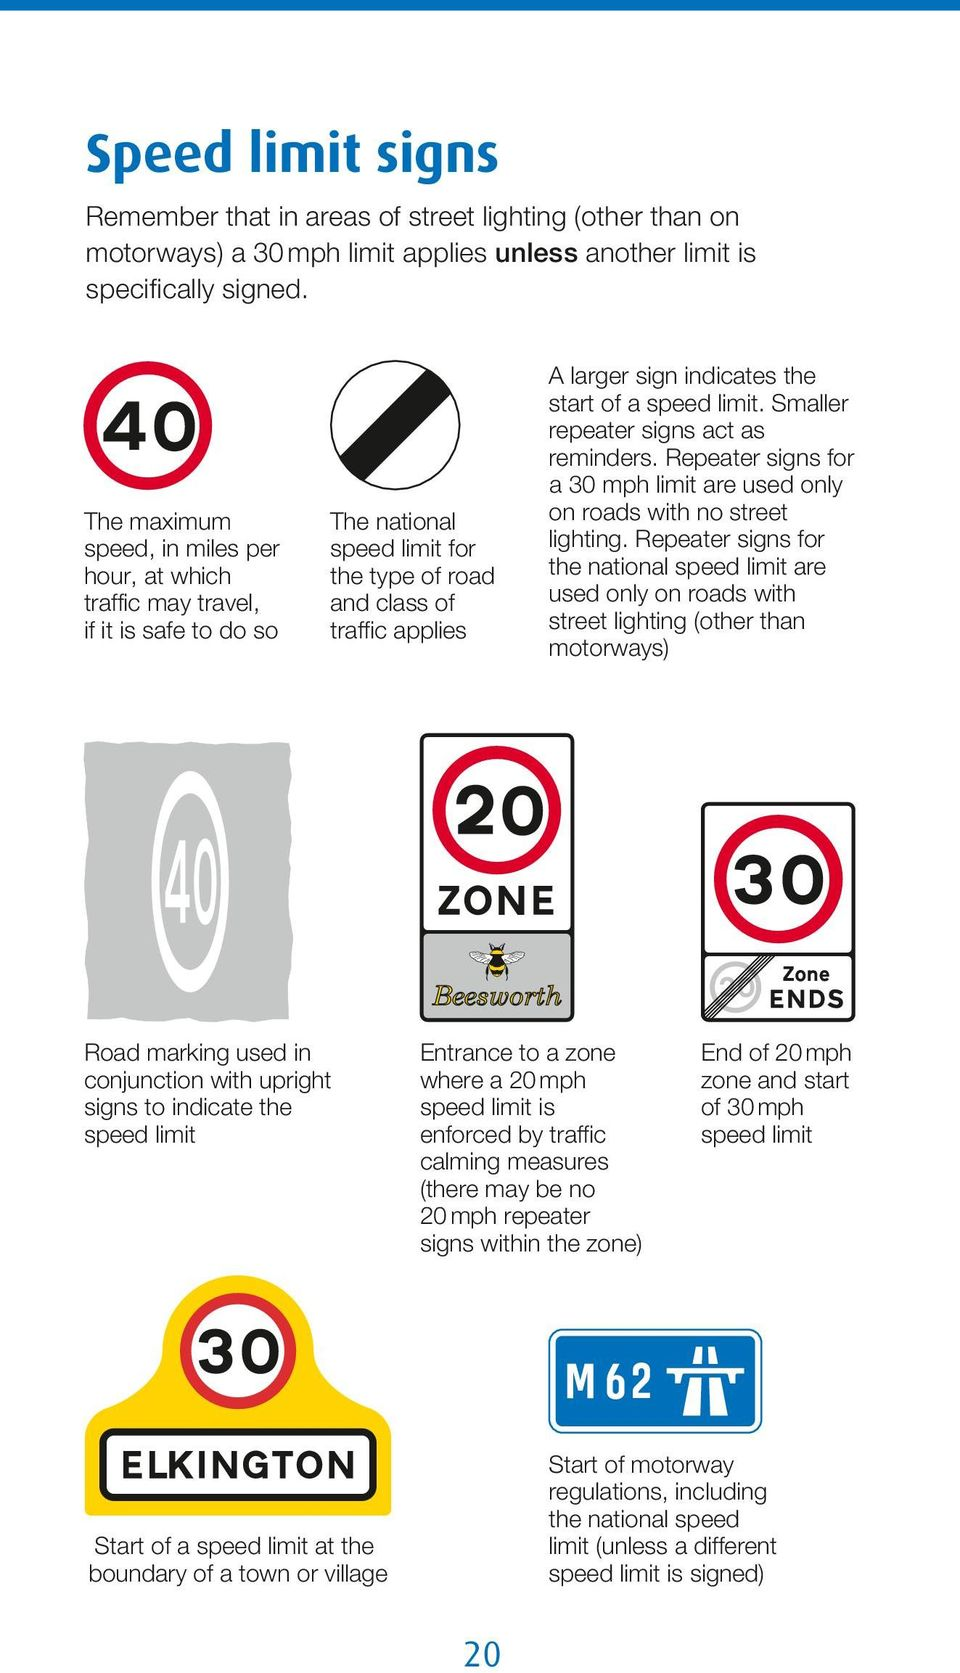 of a speed limit. Smaller repeater signs act as reminders. Repeater signs for a 30 mph limit are used only on roads with no street lighting.